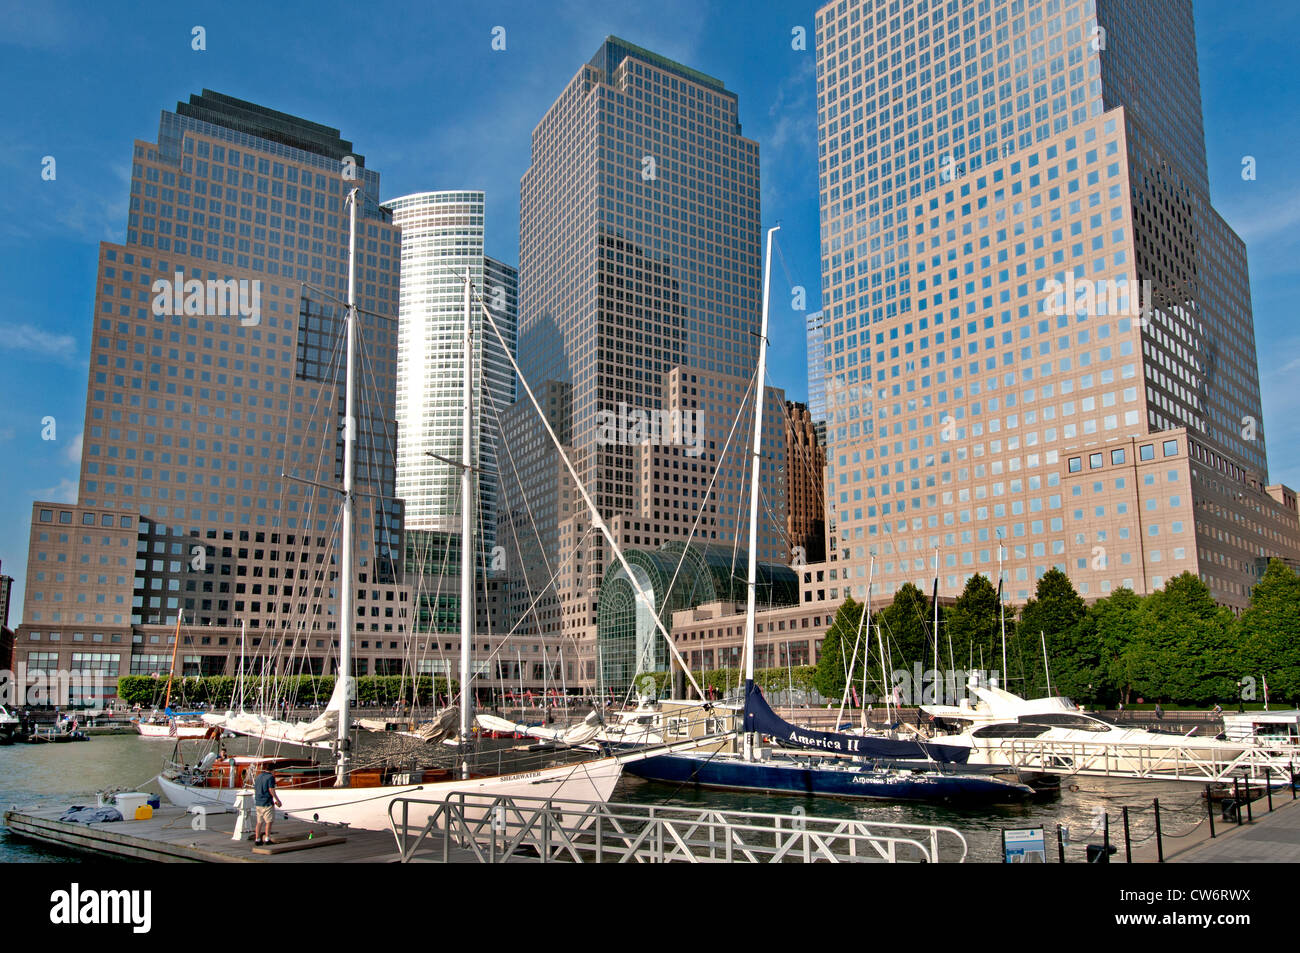 Finanzielle Zentrum Hafen Port One World Trade Center New York City Manhattan Stockbild